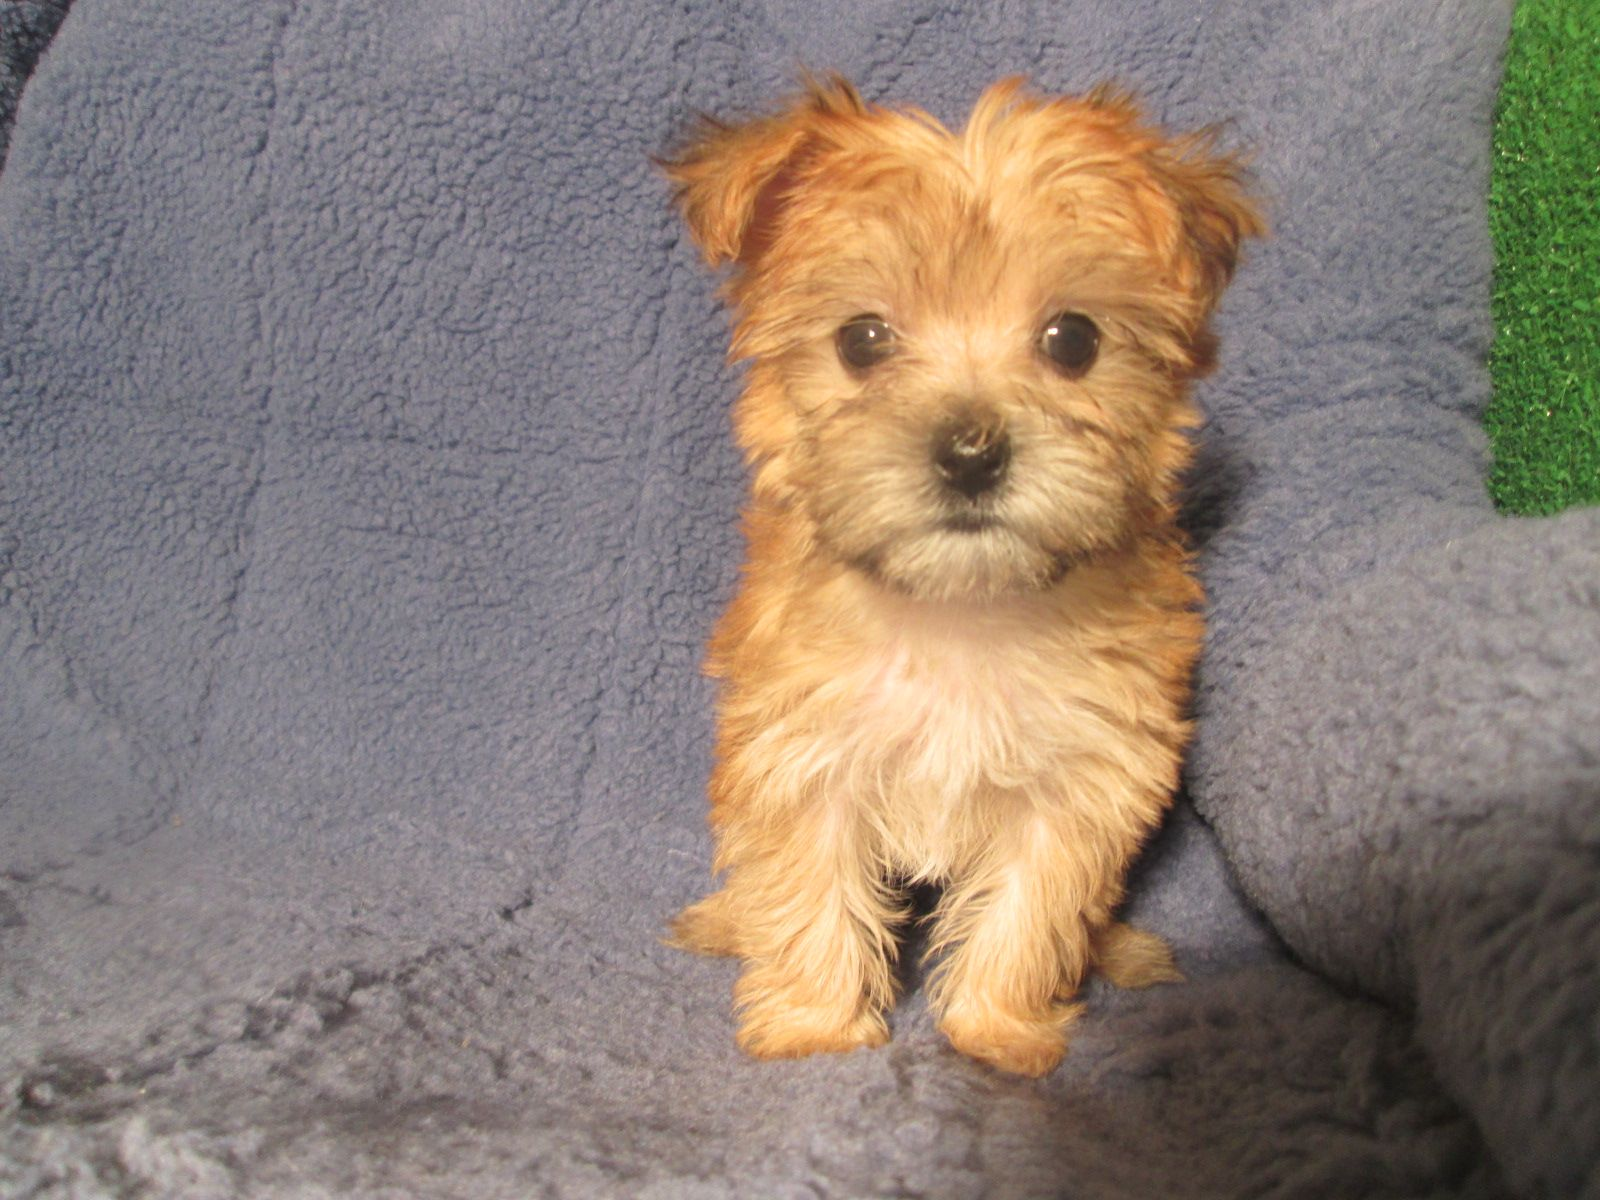 Sweet Morkie Puppies Available 8 12 Weeks Of Age Permanent Shots And Wormings Completed Along With Microchi Mixed Breed Puppies Morkie Puppies Puppies